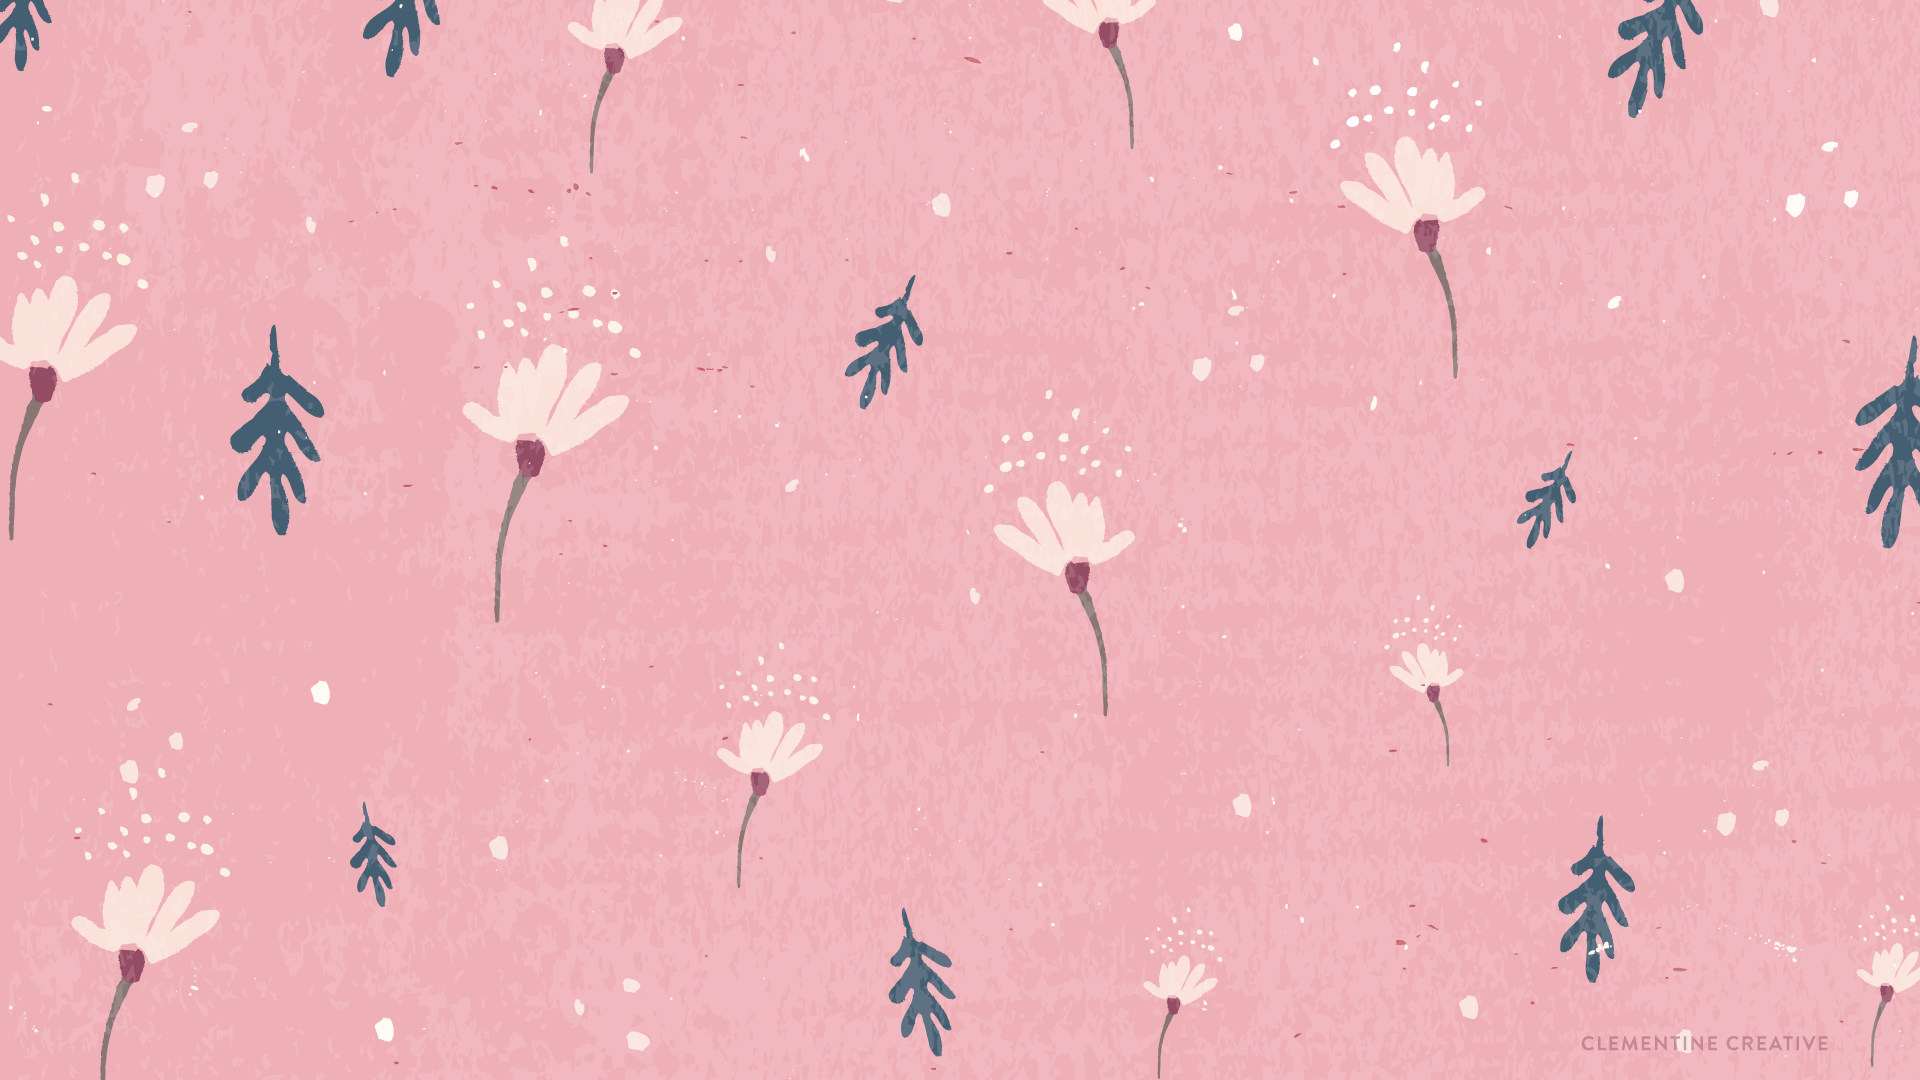 Free Wallpaper Dainty Falling Flowers